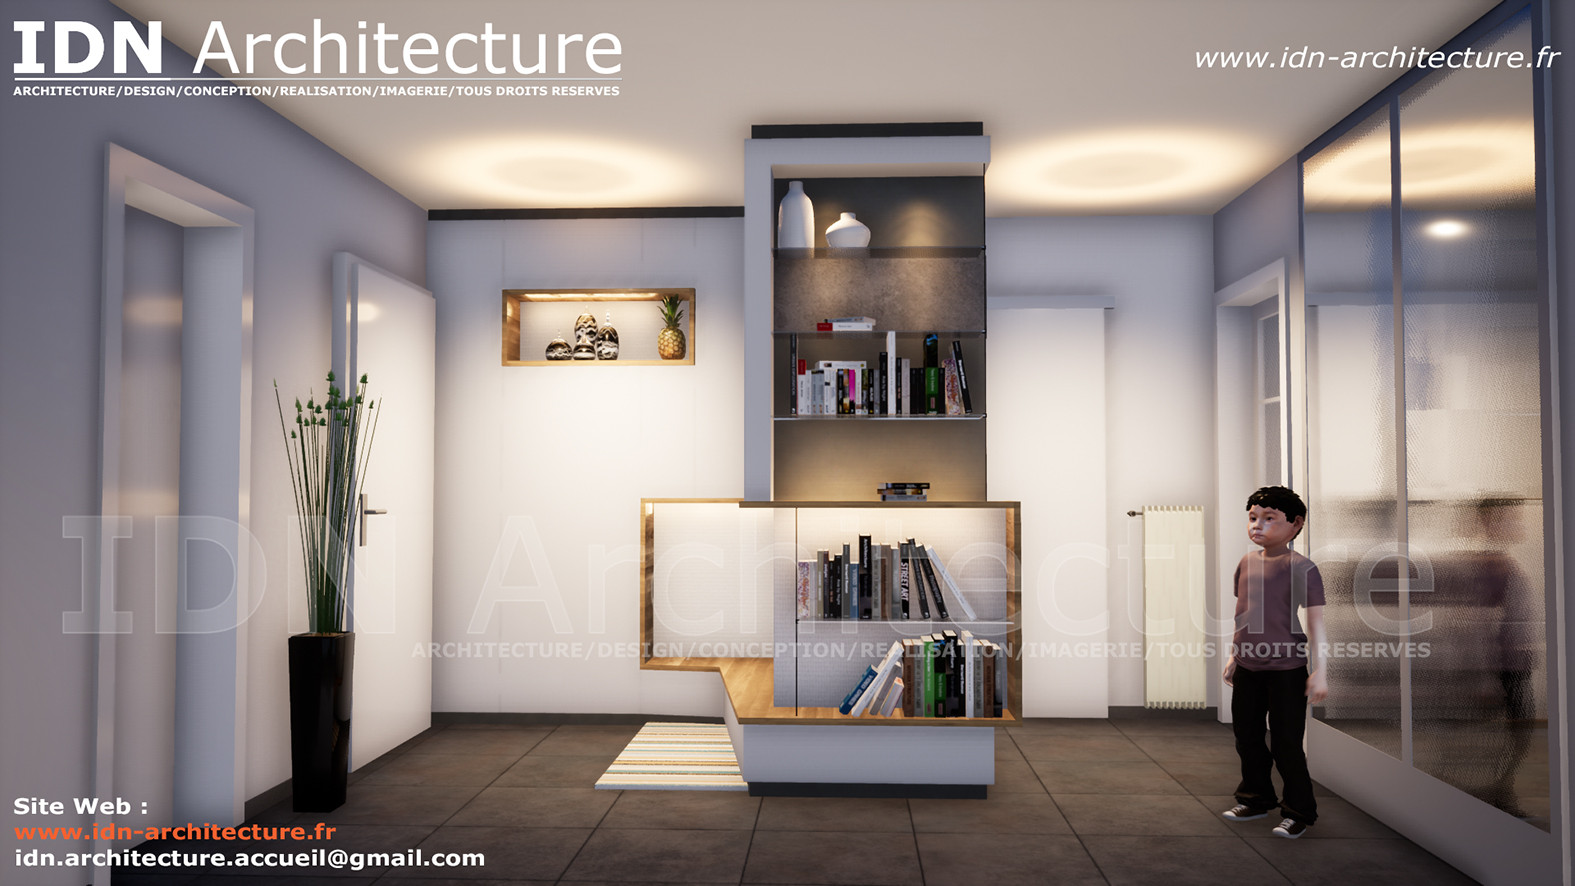 IDN ARCHITECTURE SAS-DESIGN AMENAGEMENT-